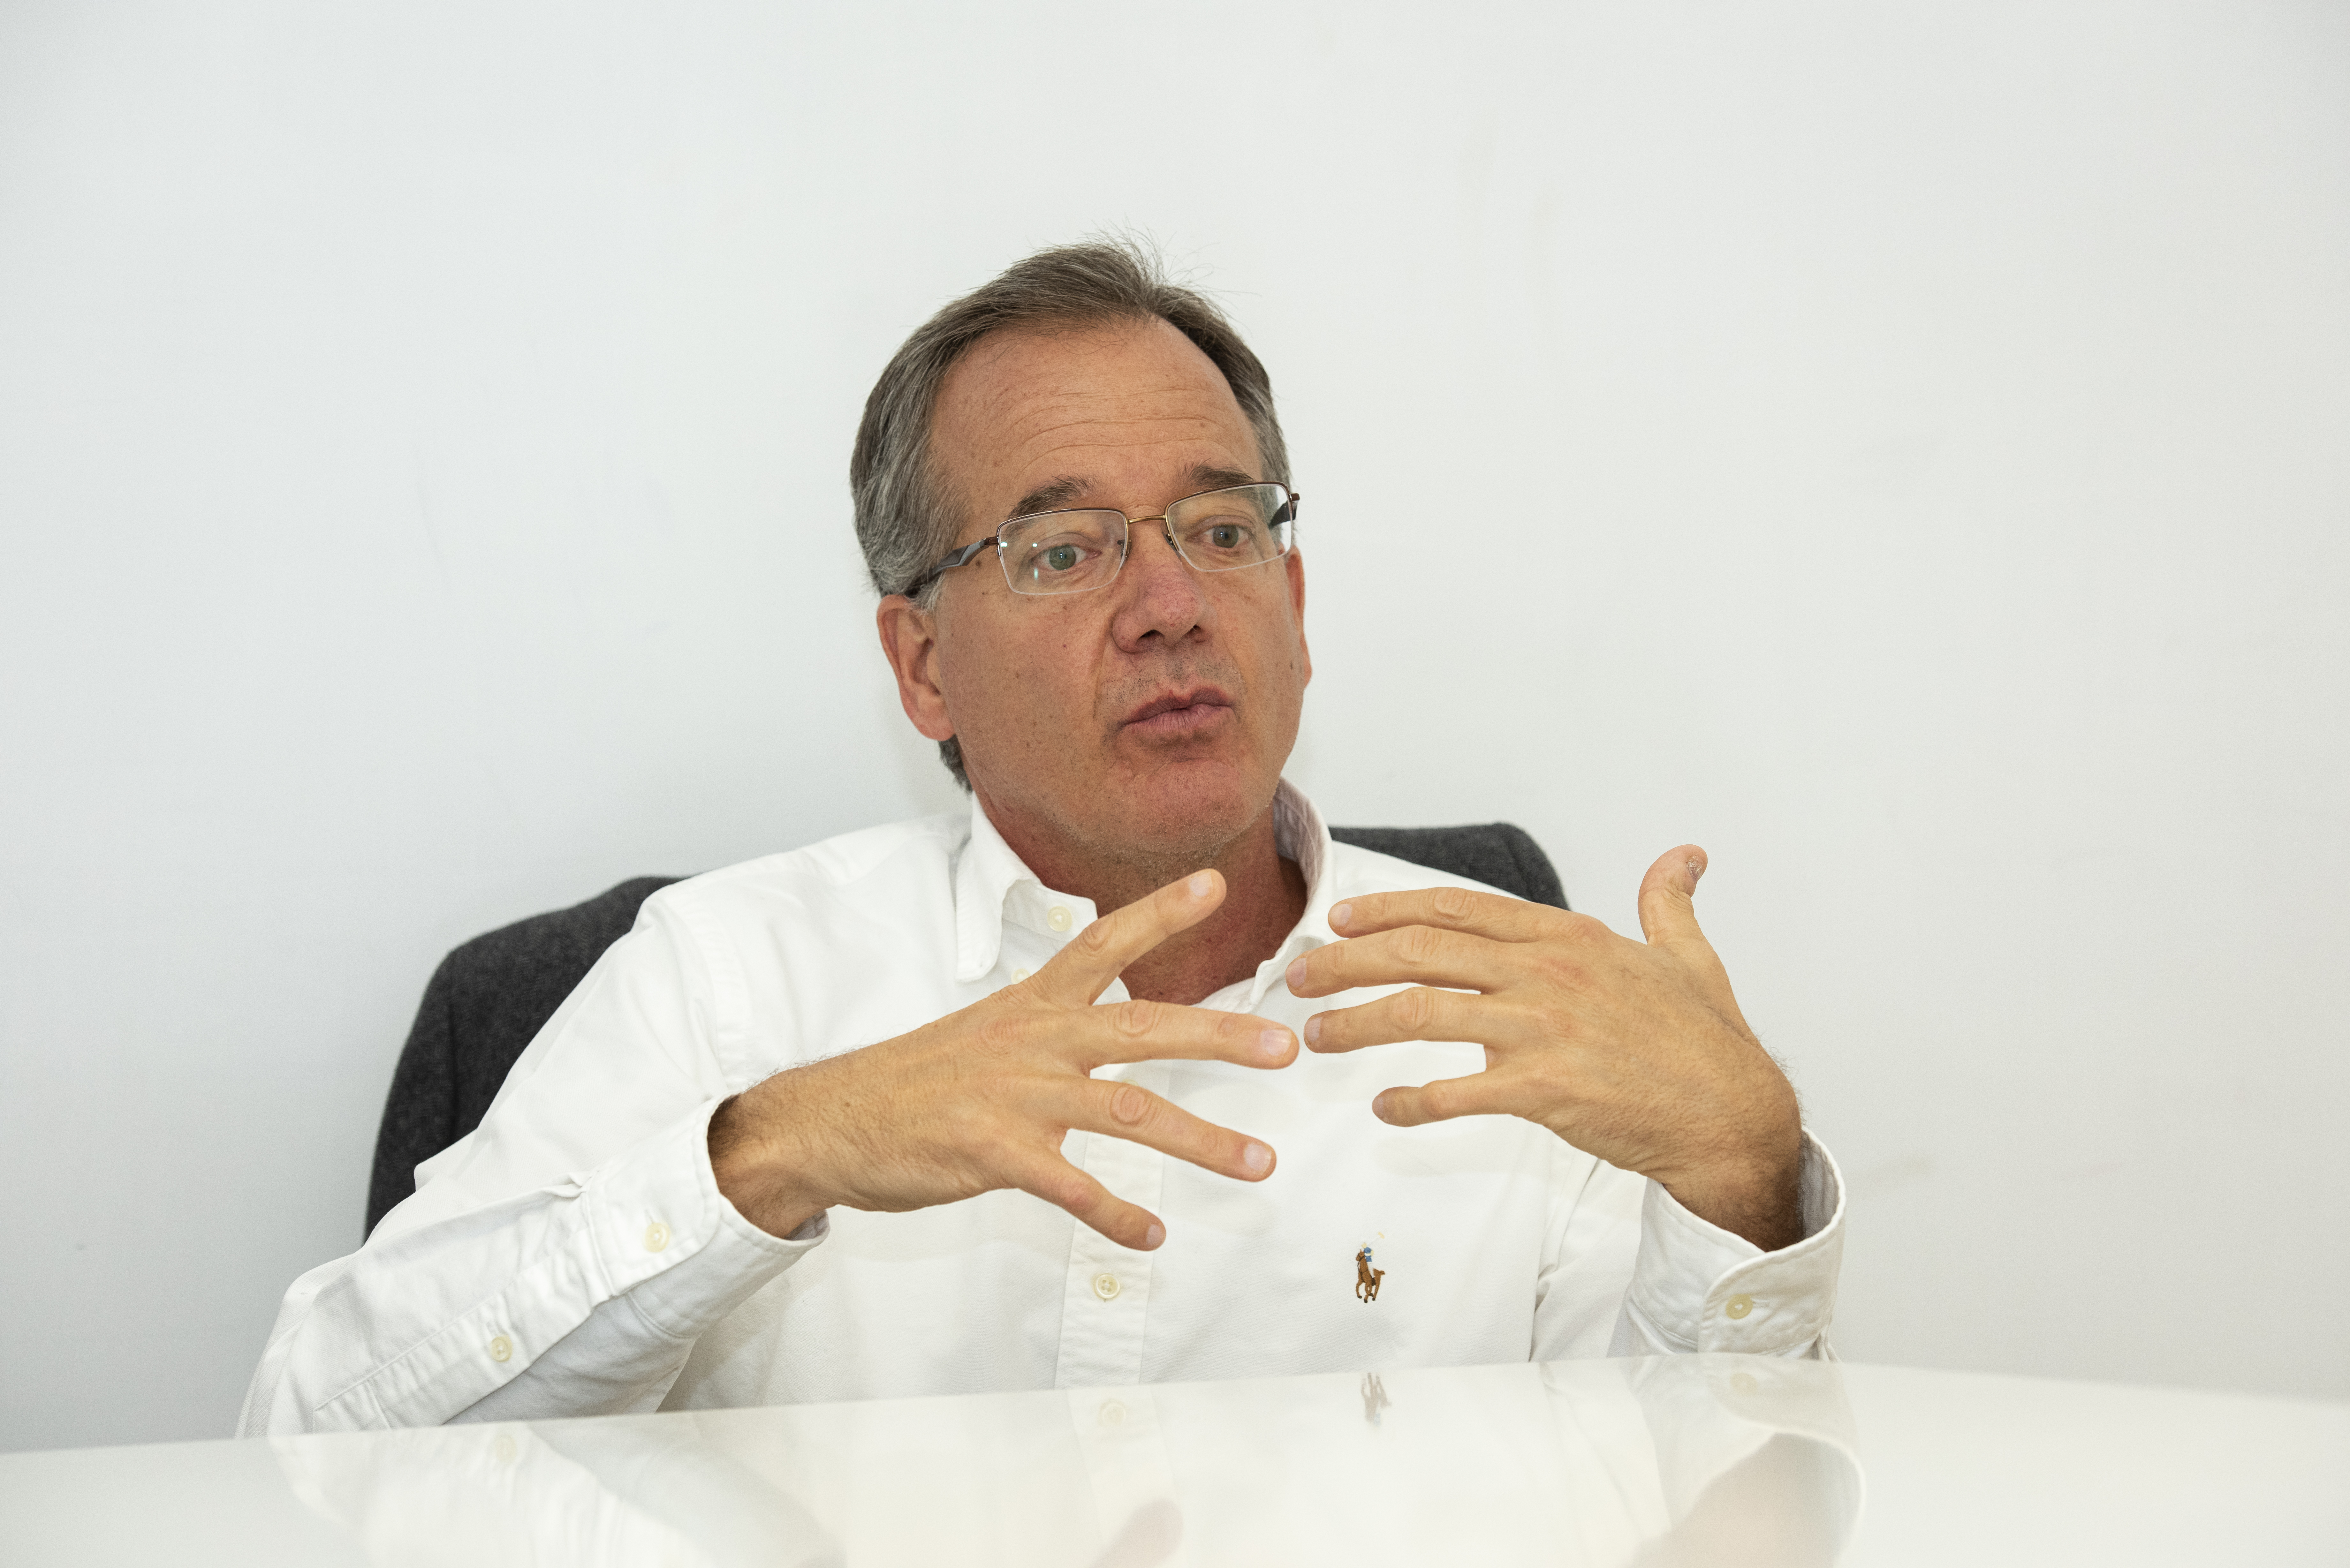 Nelson Campbell, CEO and President of PlantPure, Inc.